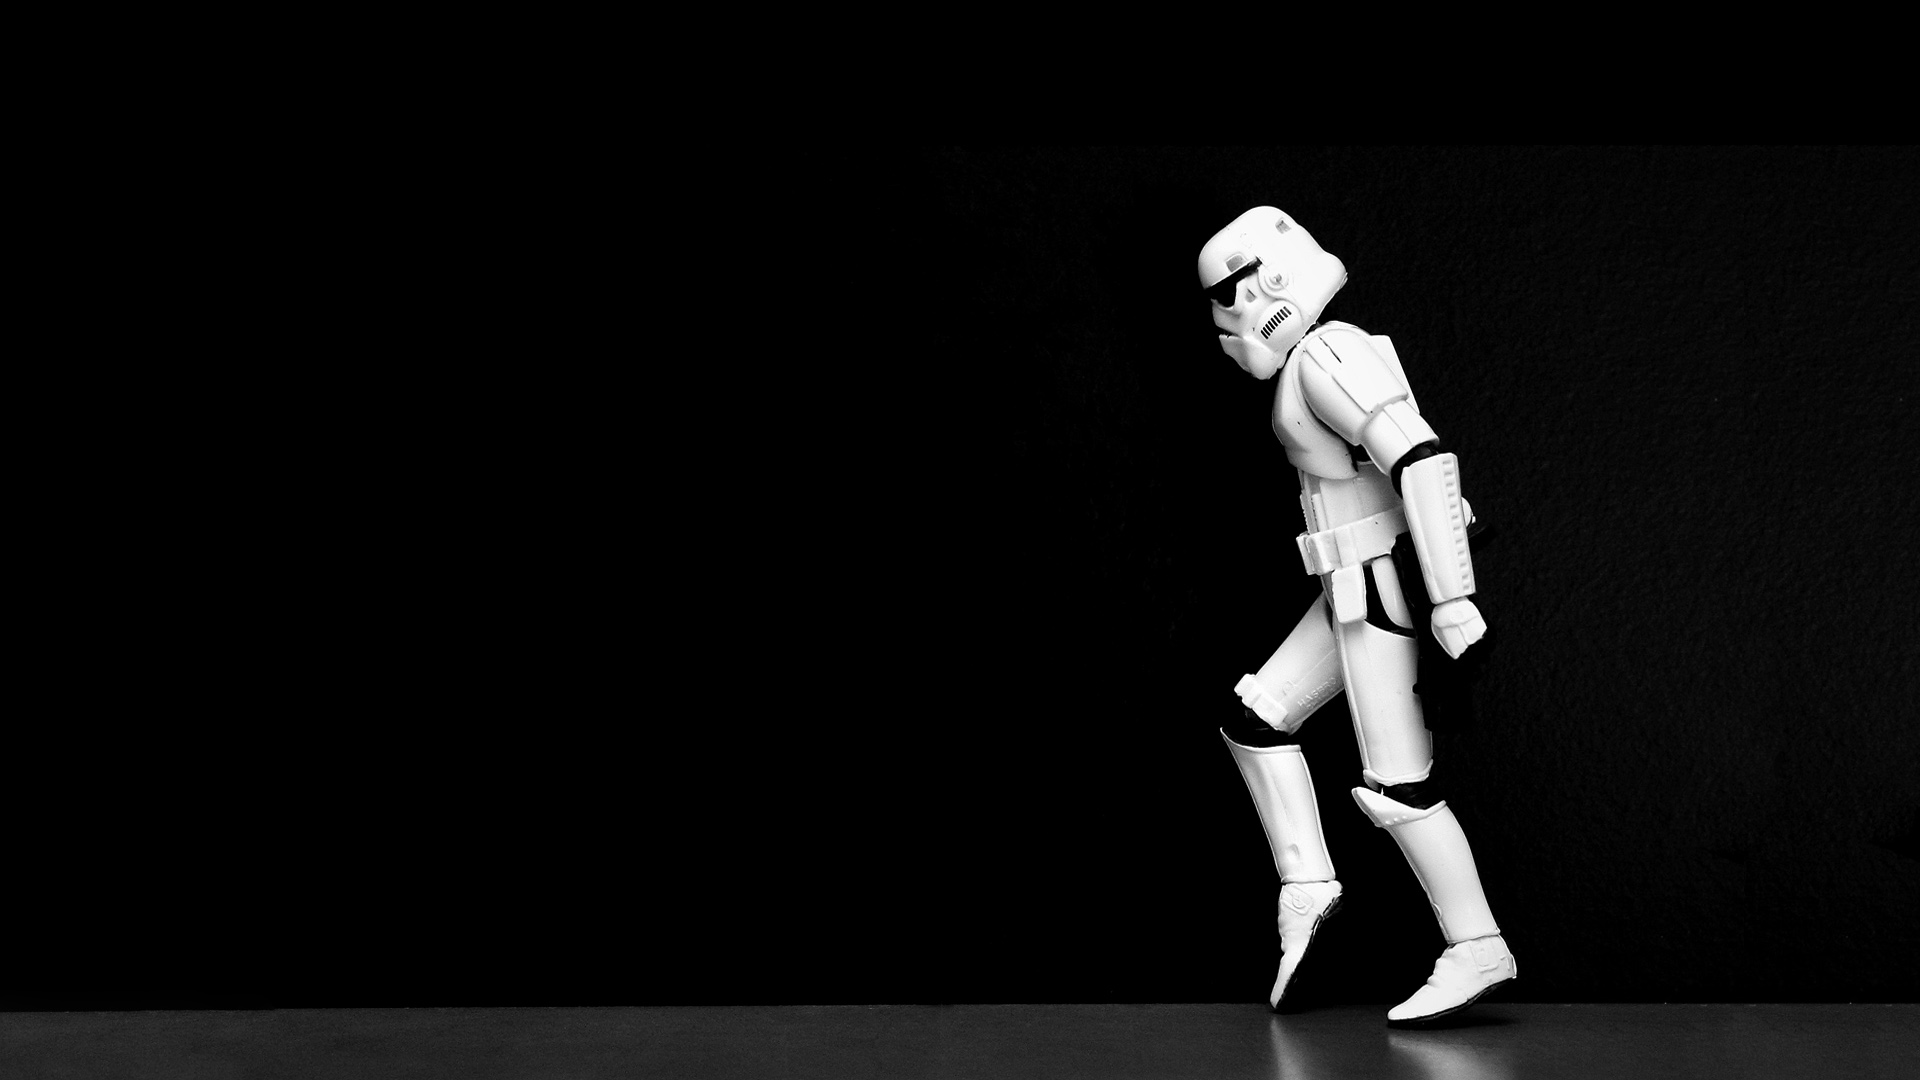 Star Wars Wallpaper 1920x1080 Star Wars Stormtroopers Moonwalk 1920x1080